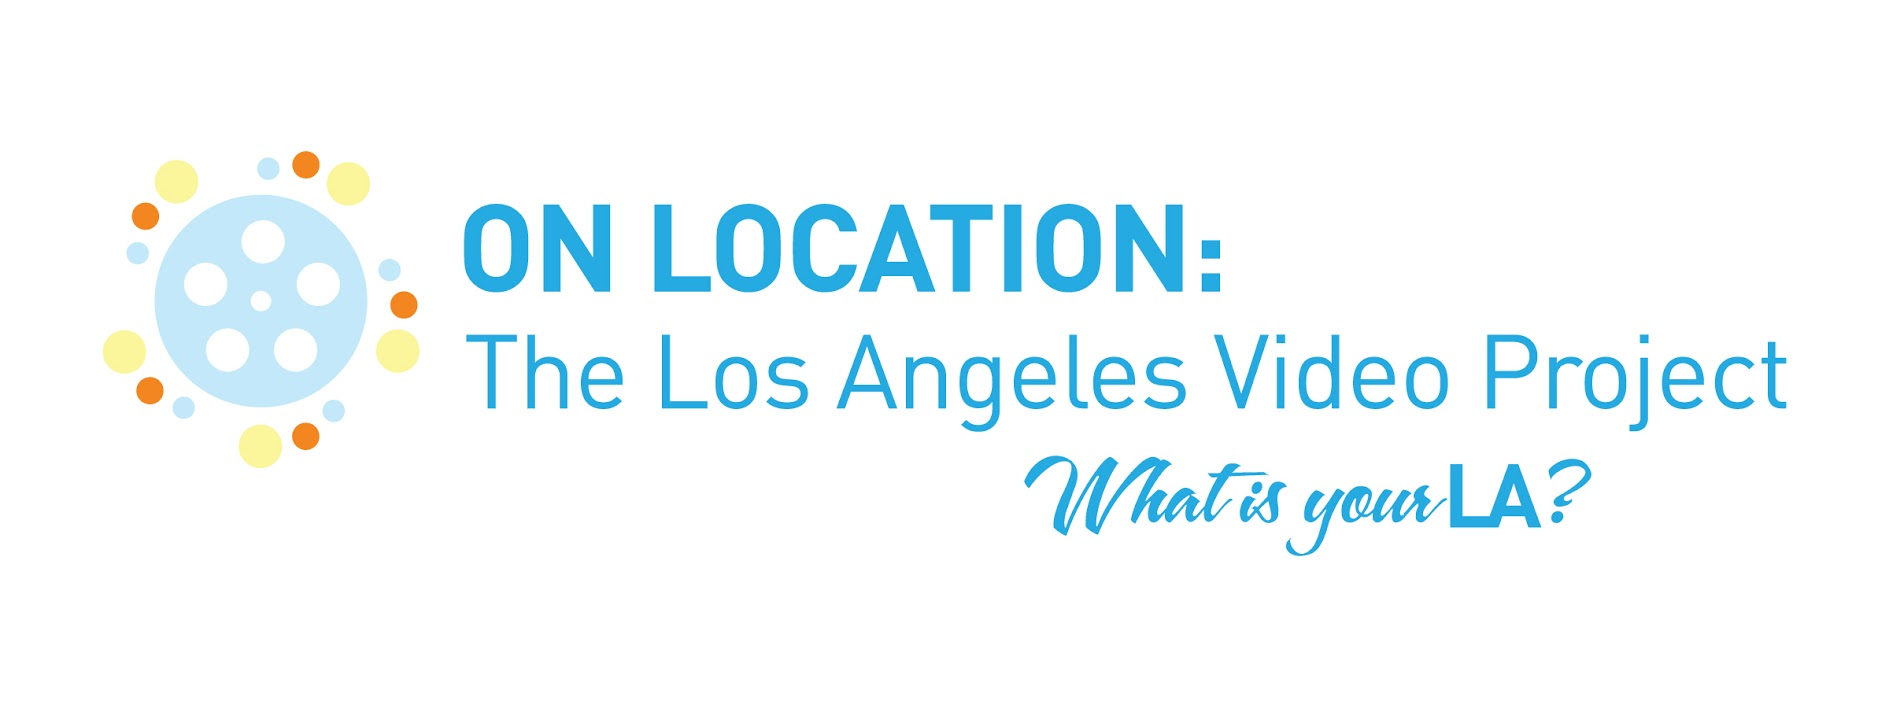 on_location_logo.png